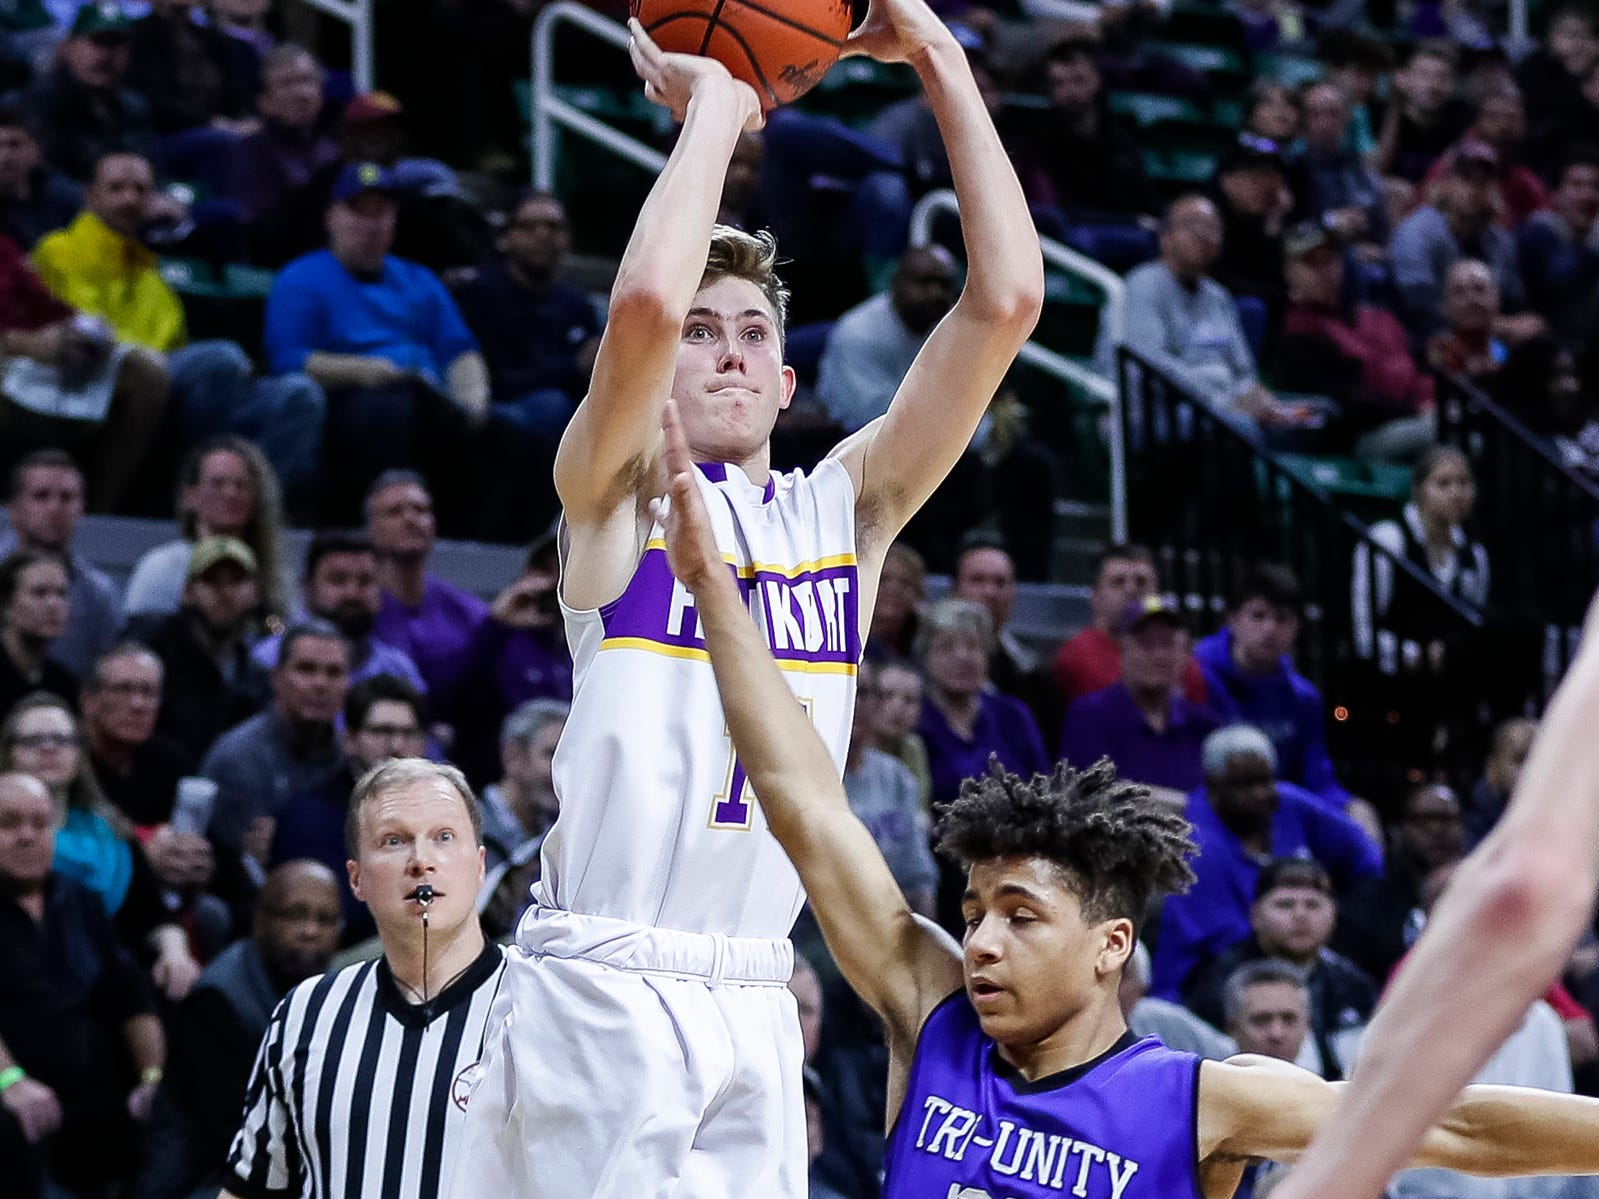 Frankfort's Will Newbold (14) attempts for a 3-point basket against Wyoming Tri-unity Christian's Brady Titus (25) during the first half of MHSAA Division 4 semifinal at the Breslin Center in East Lansing, Thursday, March 14, 2019.